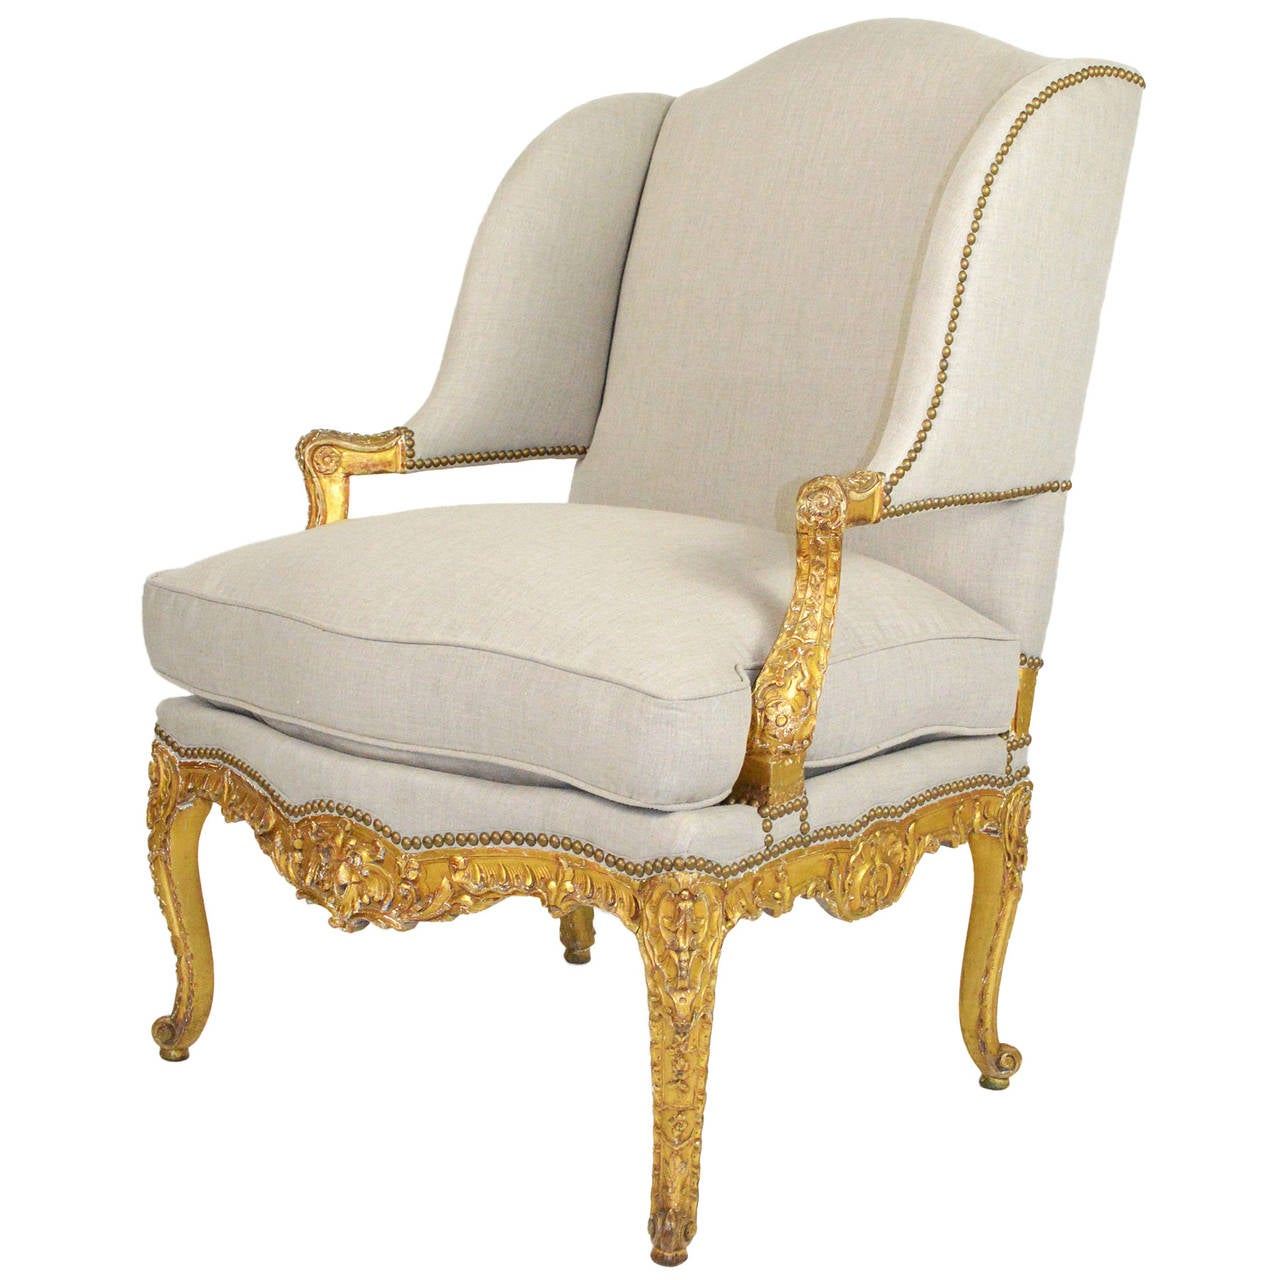 french louis xv style giltwood fauteuil wing chair at 1stdibs. Black Bedroom Furniture Sets. Home Design Ideas